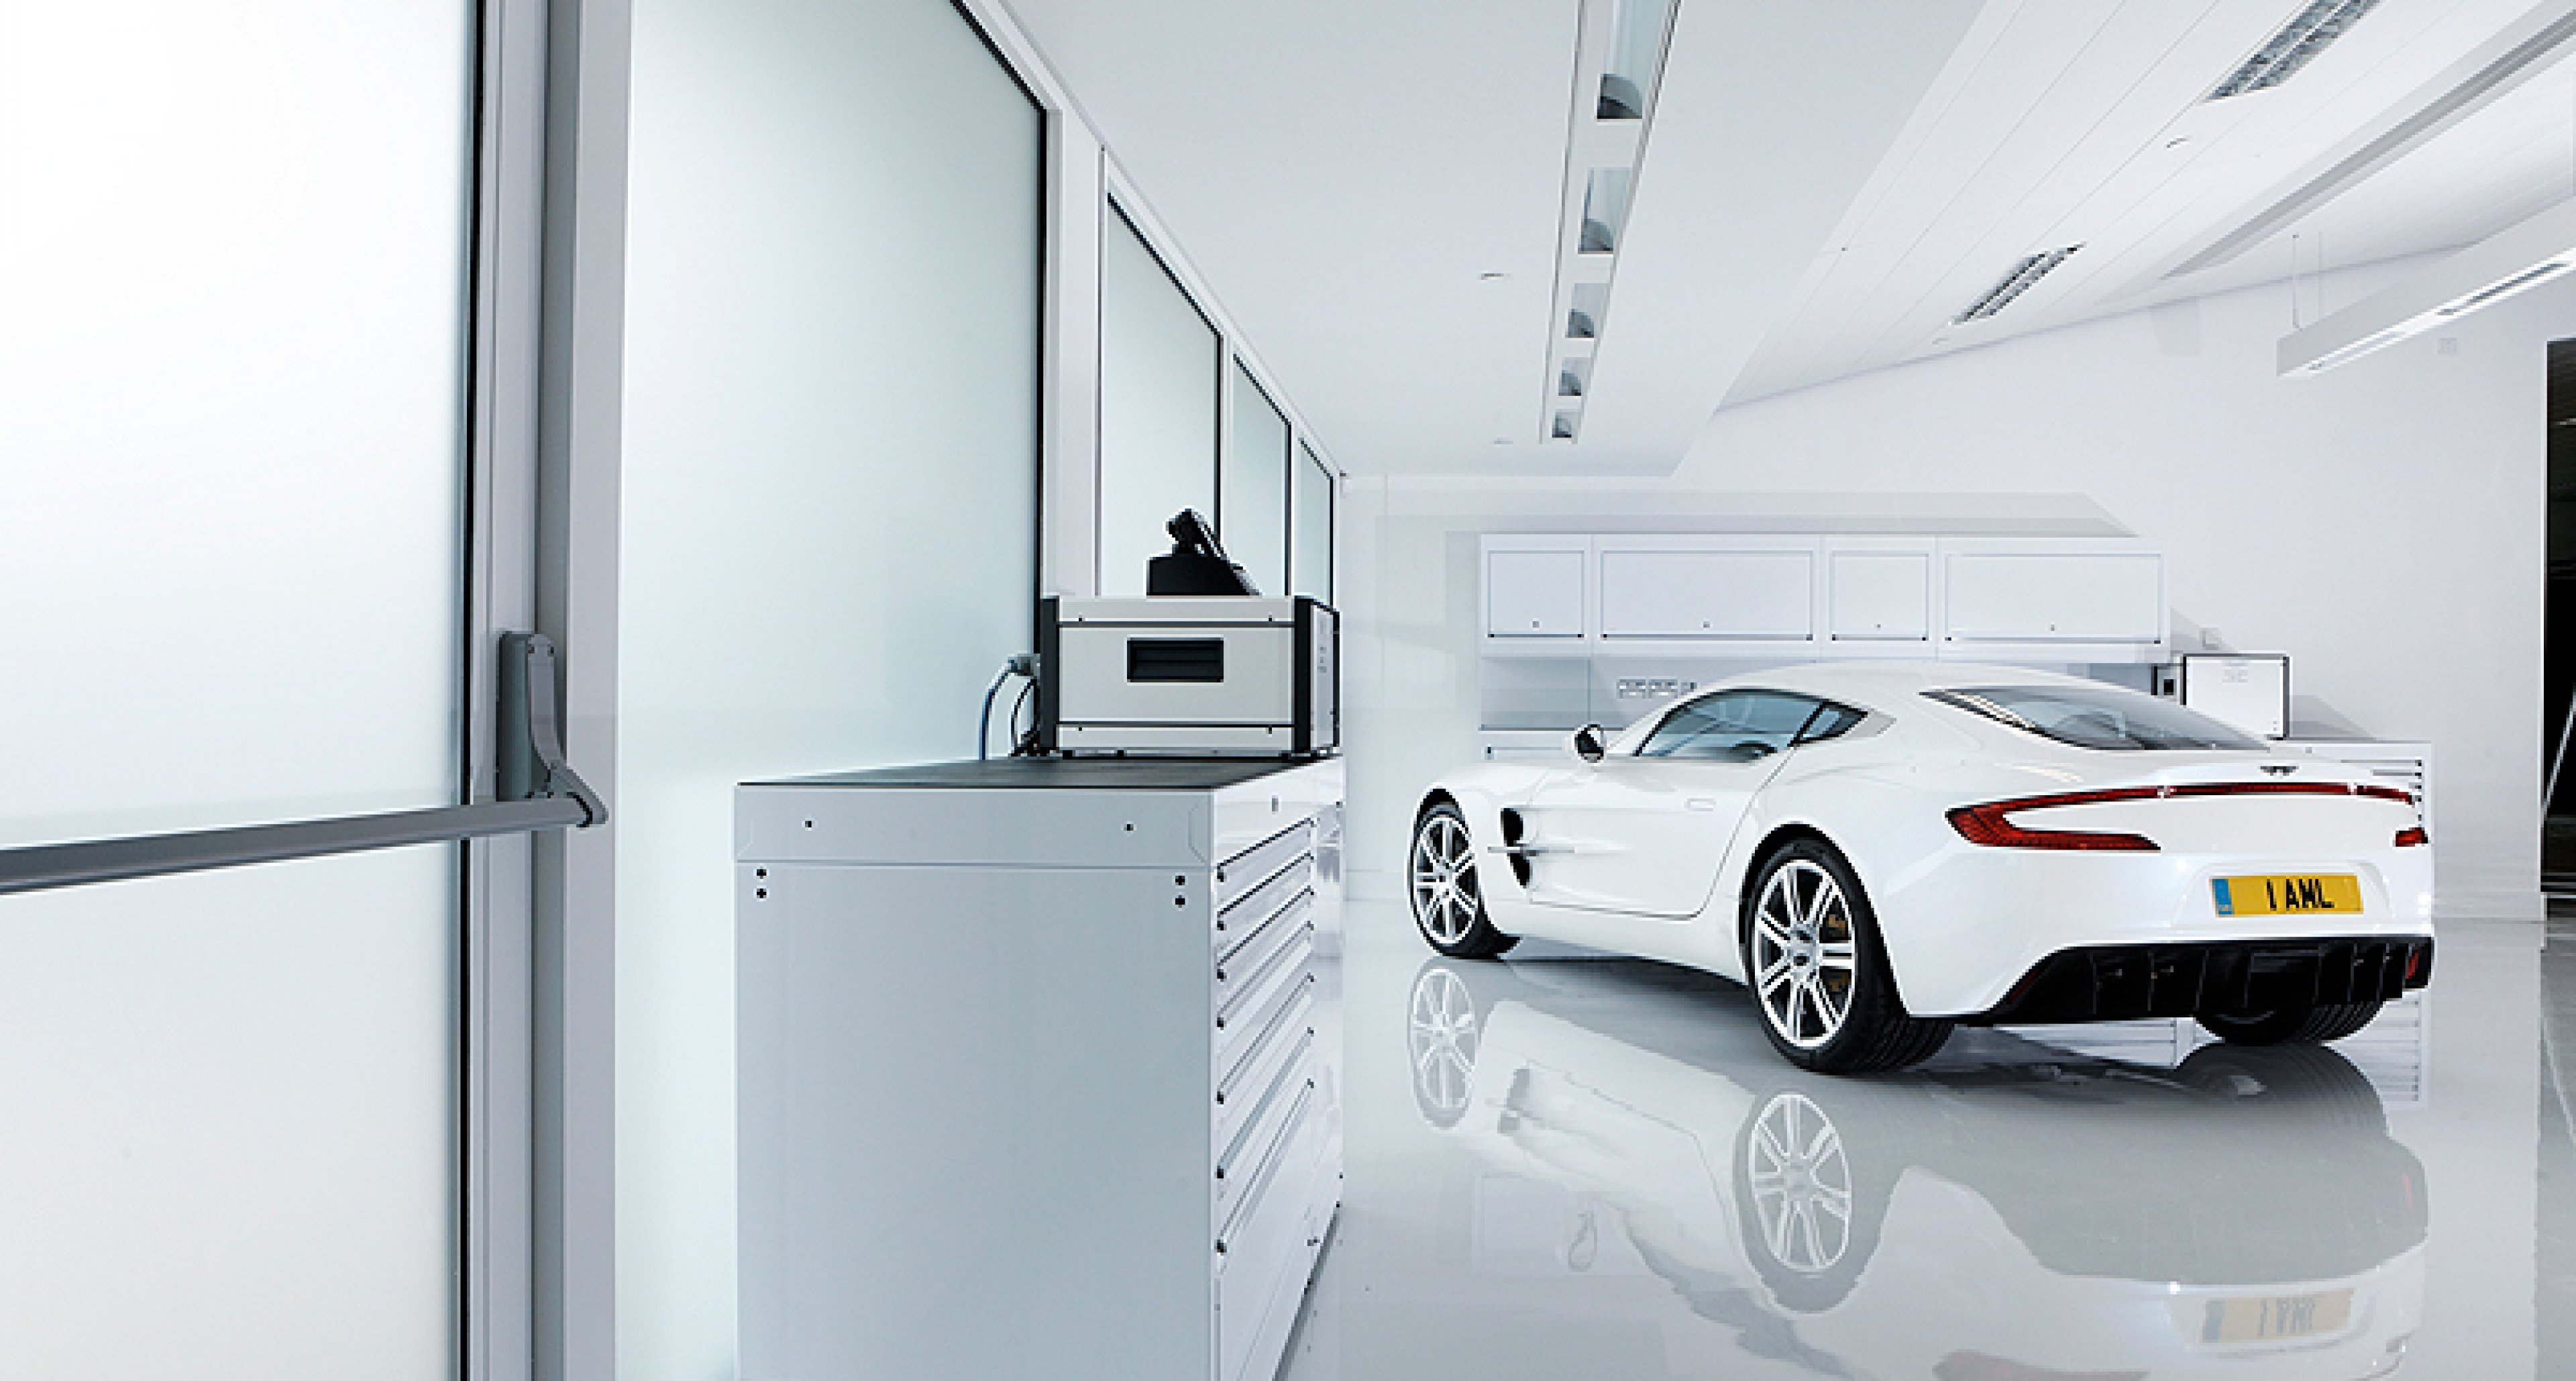 Behind the scenes with the Aston Martin One-77